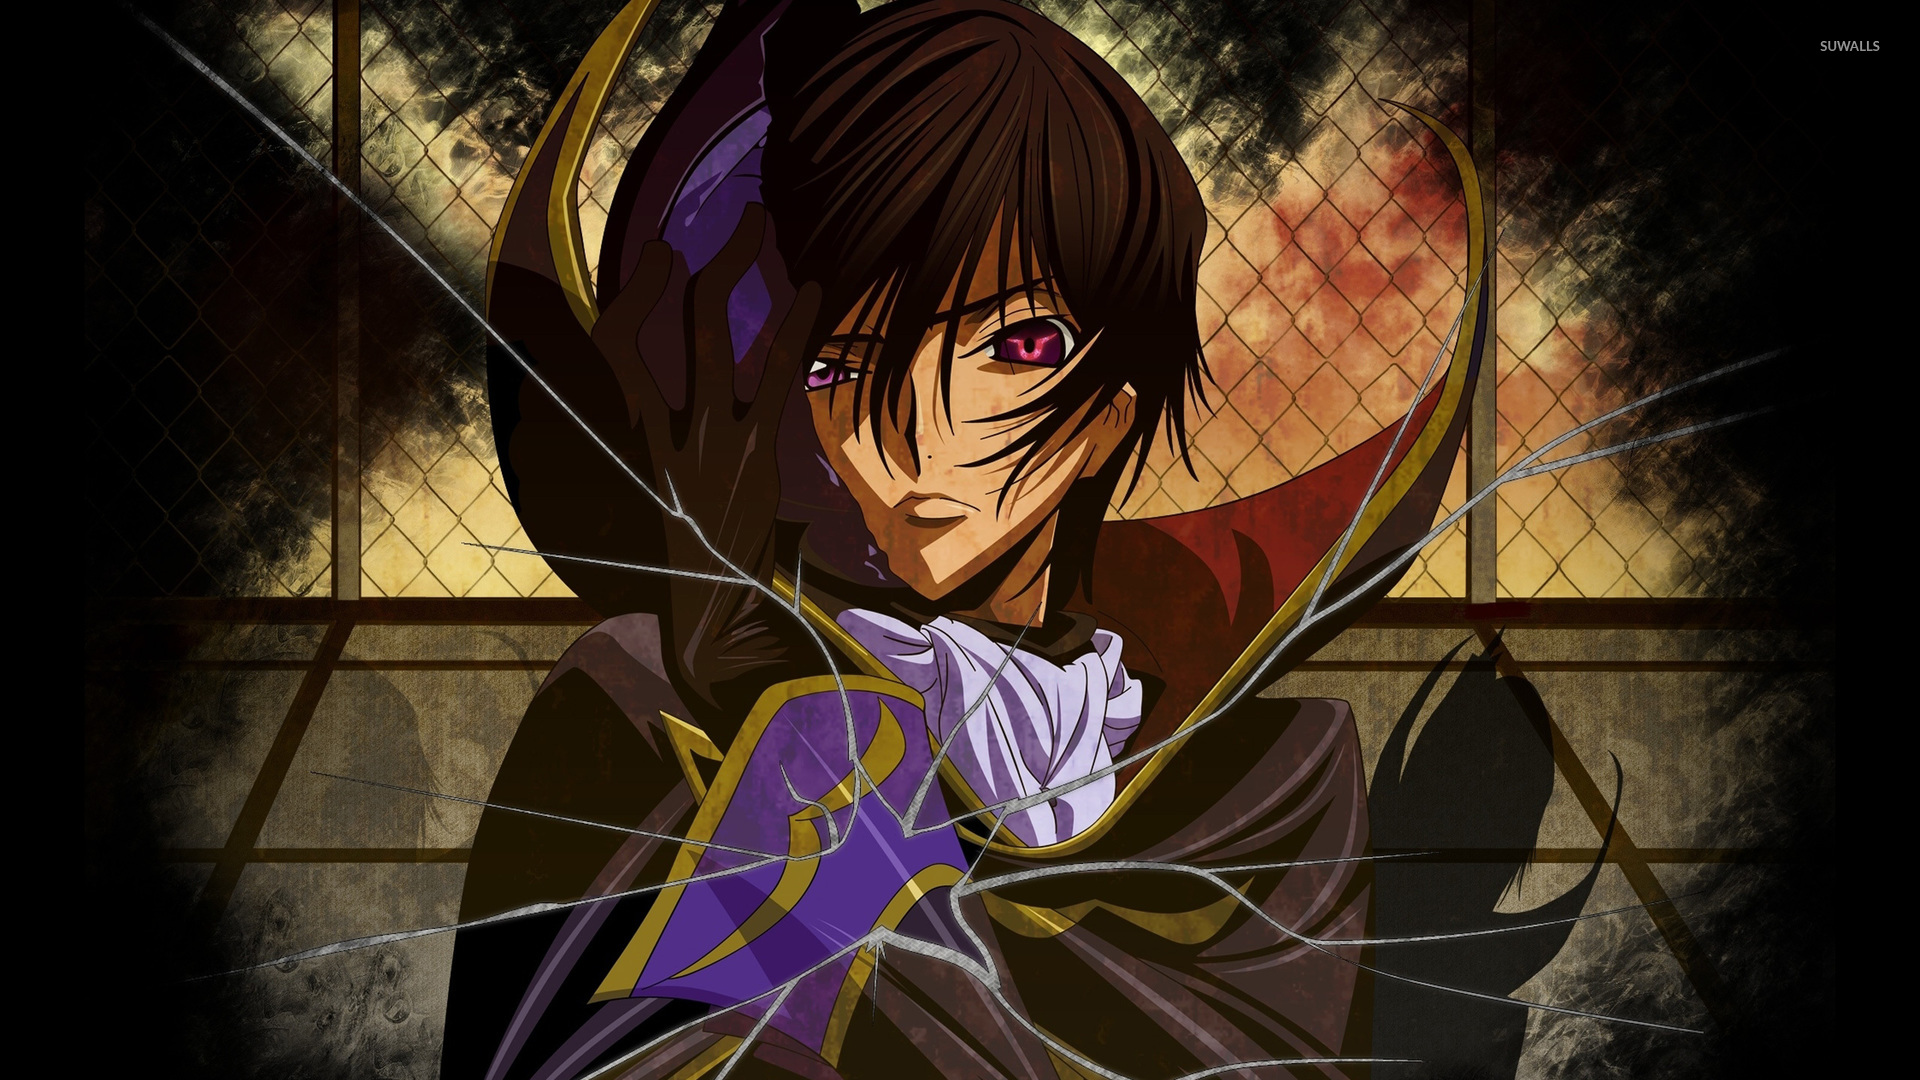 lelouch lamperouge code geass wallpaper anime. Black Bedroom Furniture Sets. Home Design Ideas